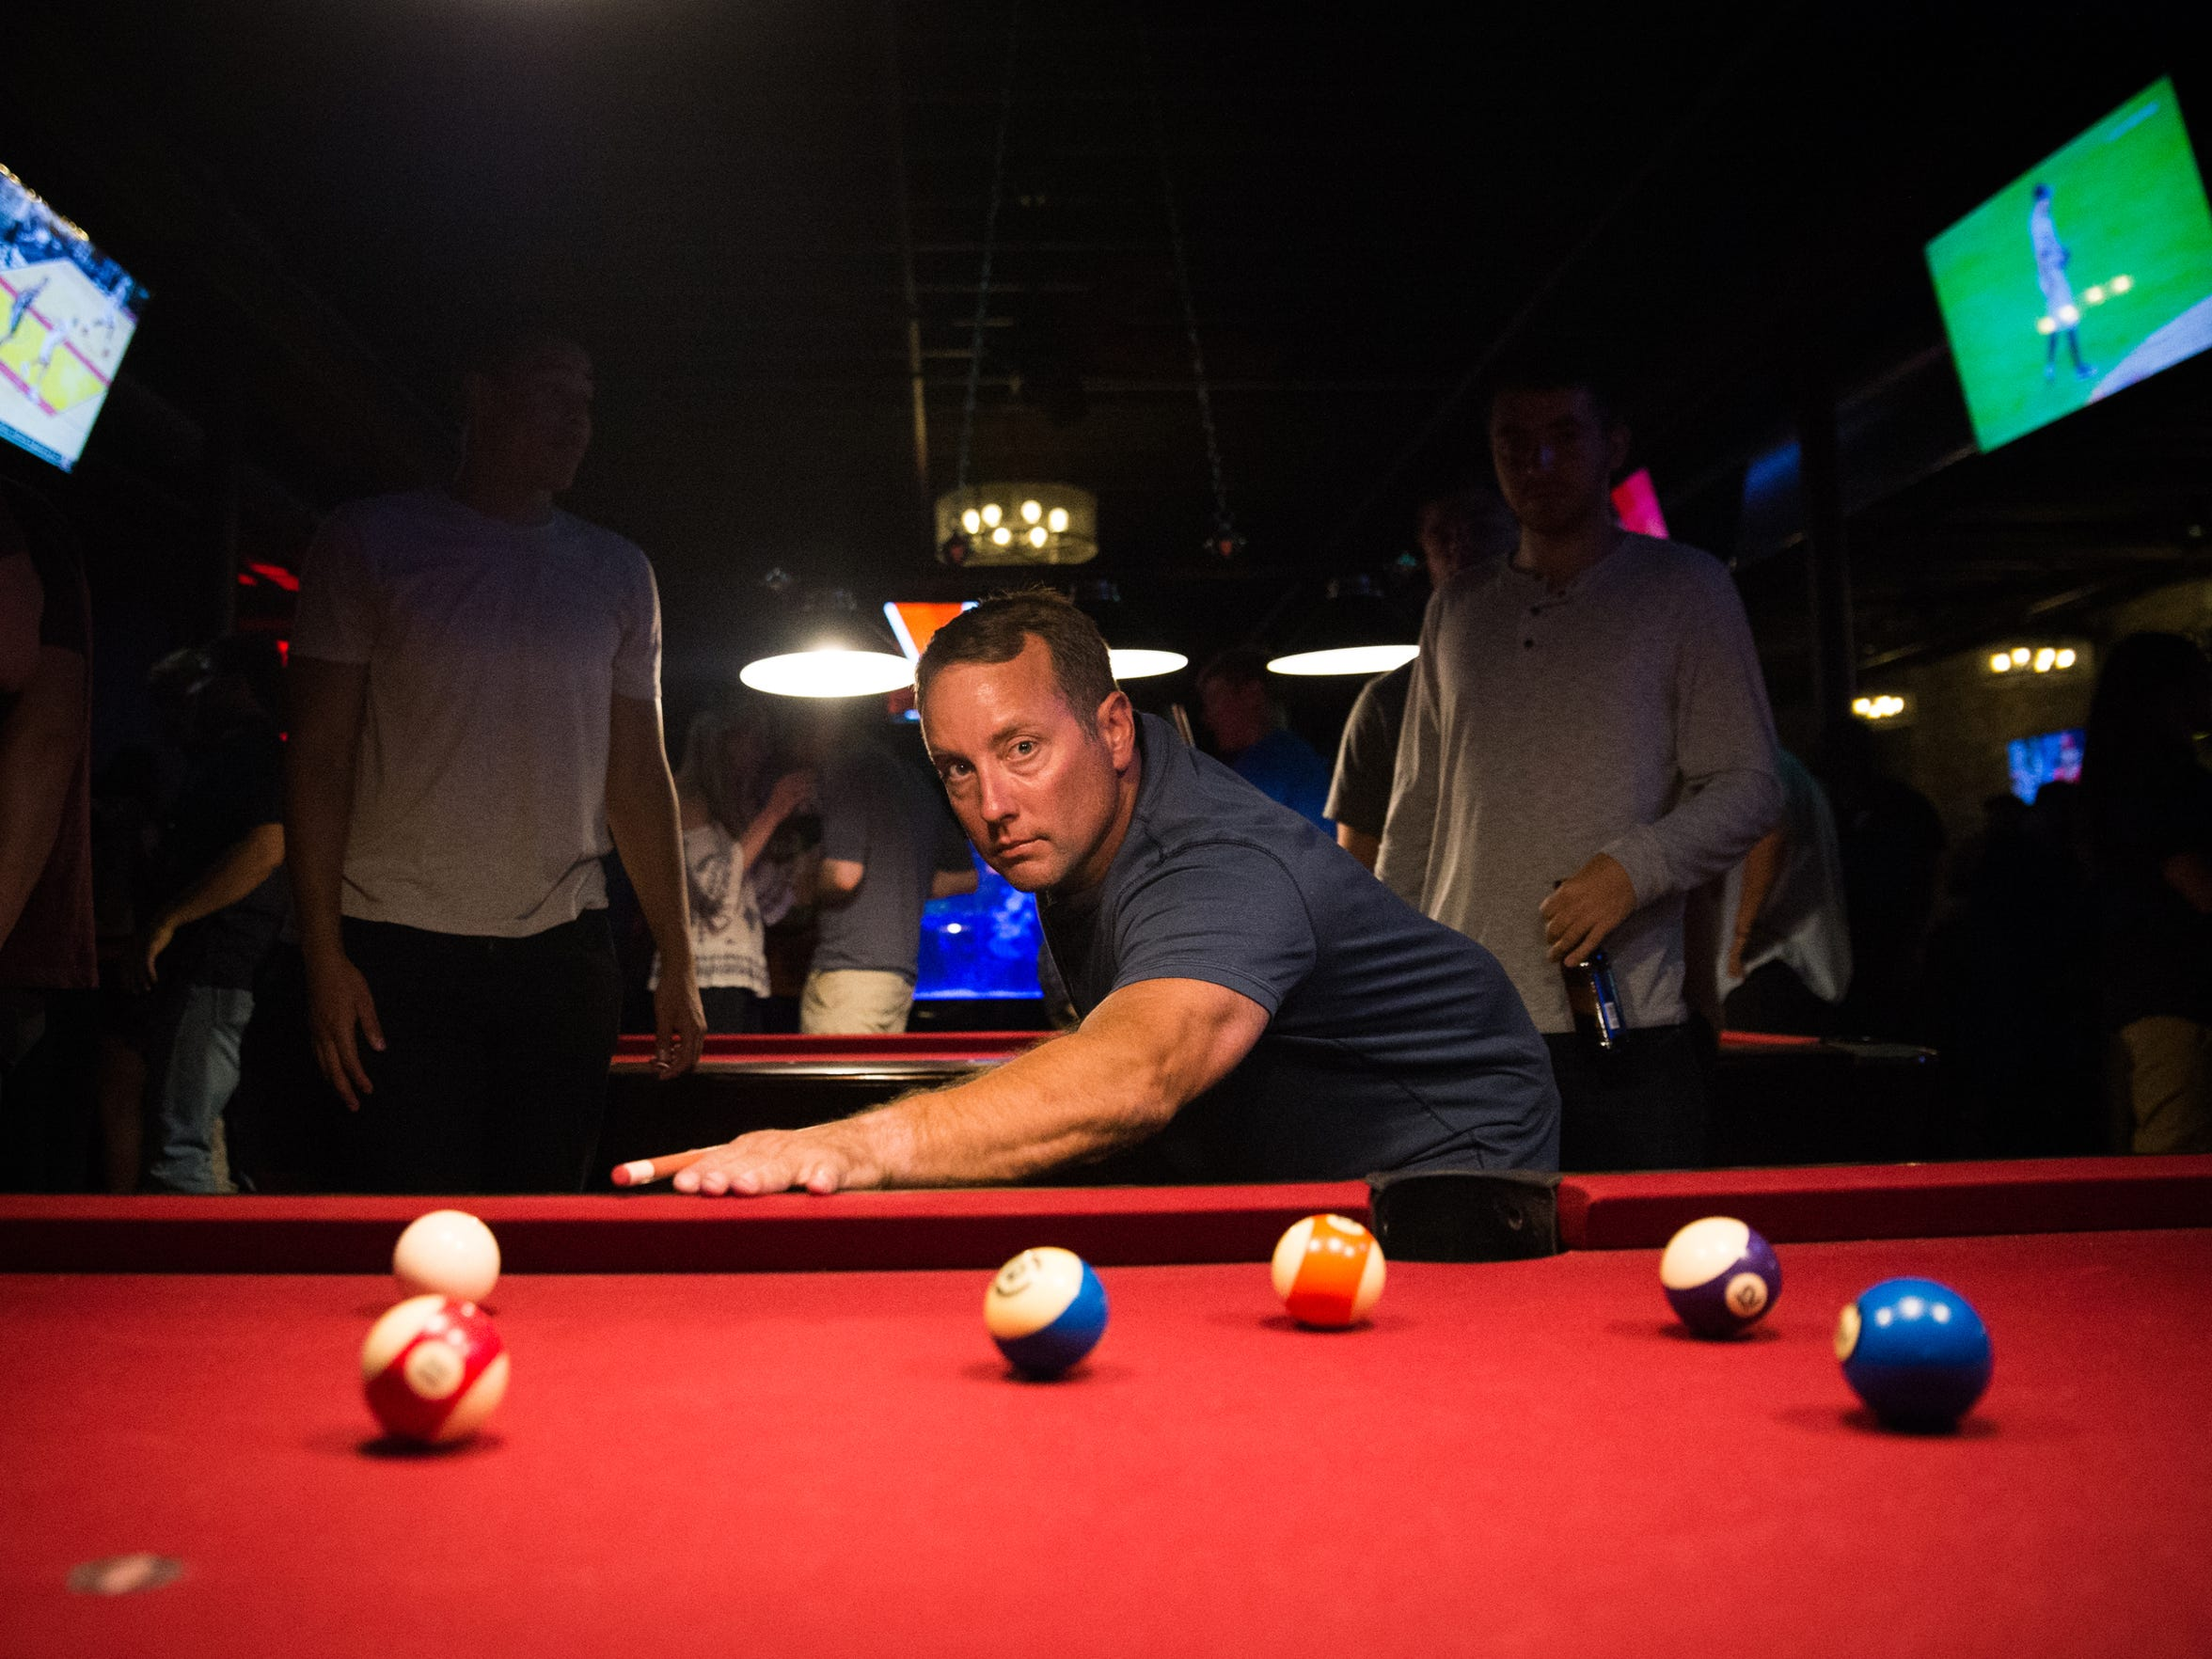 Dan Johnson of New Baltimore plays pool at the Fifth